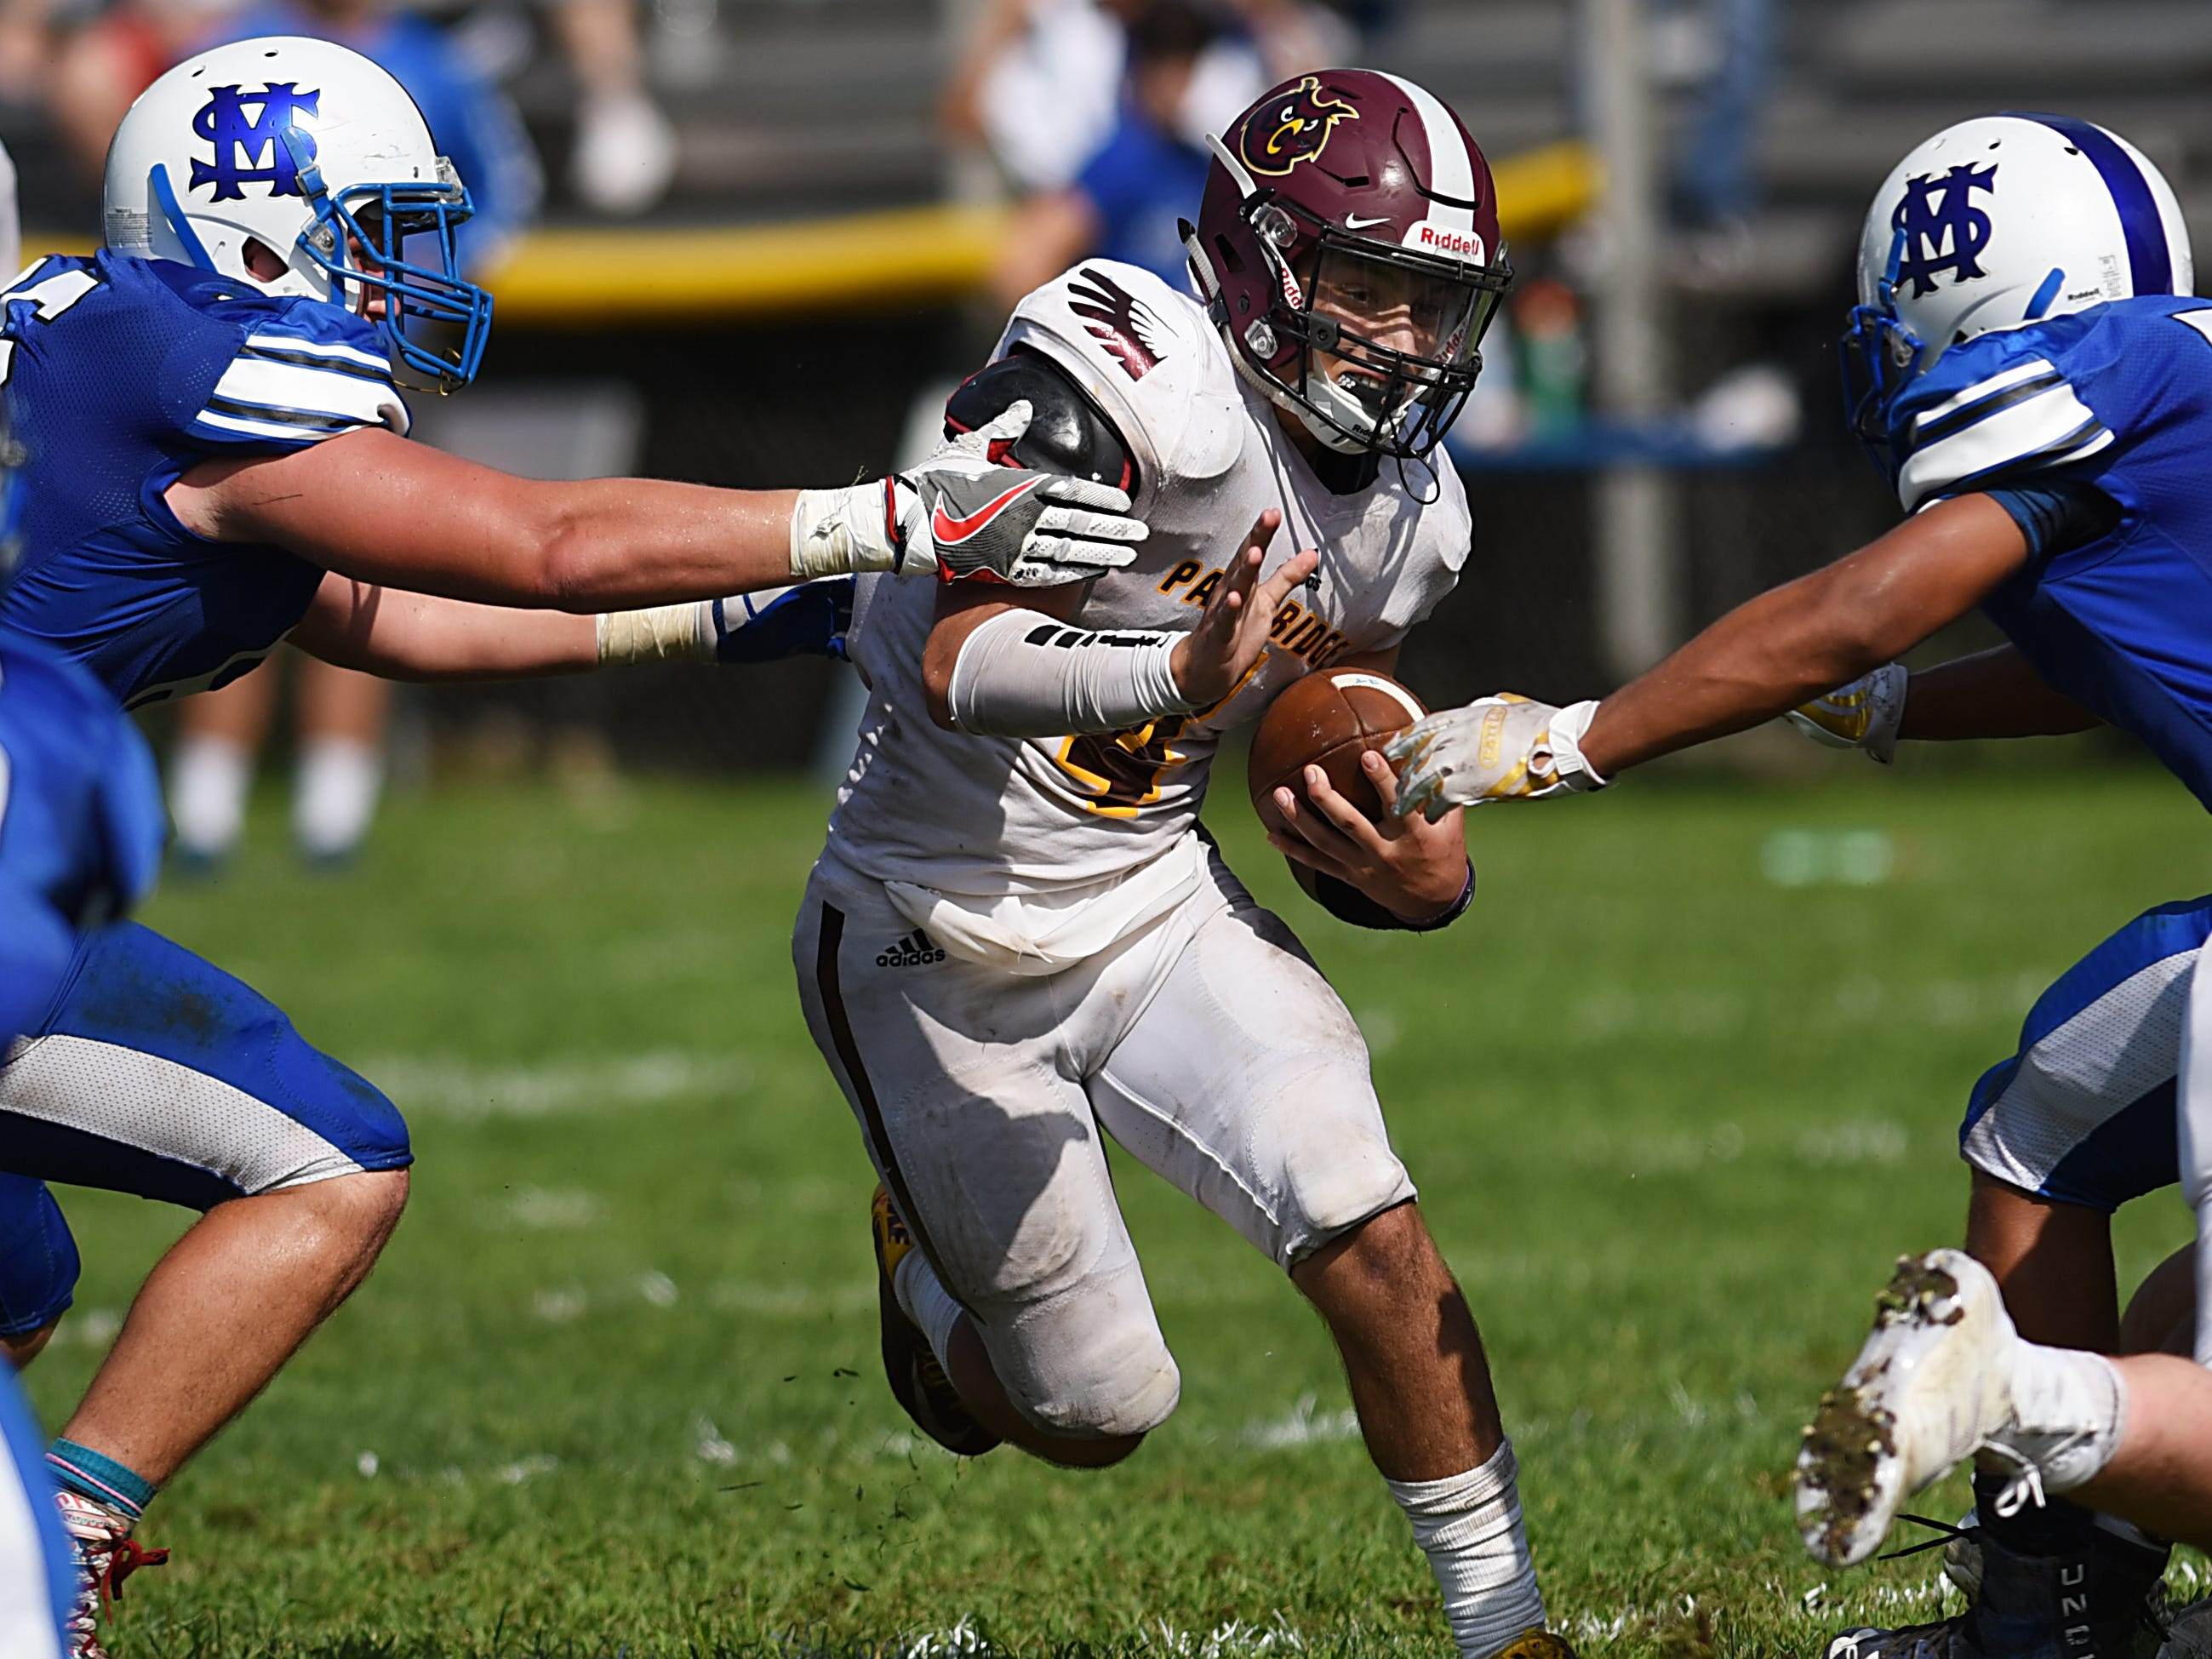 High school football game between Park Ridge and St. Mary at Tamblyn Field in Rutherford on Saturday September 15, 2018. PR#4 Vincent Pinto runs with the ball.